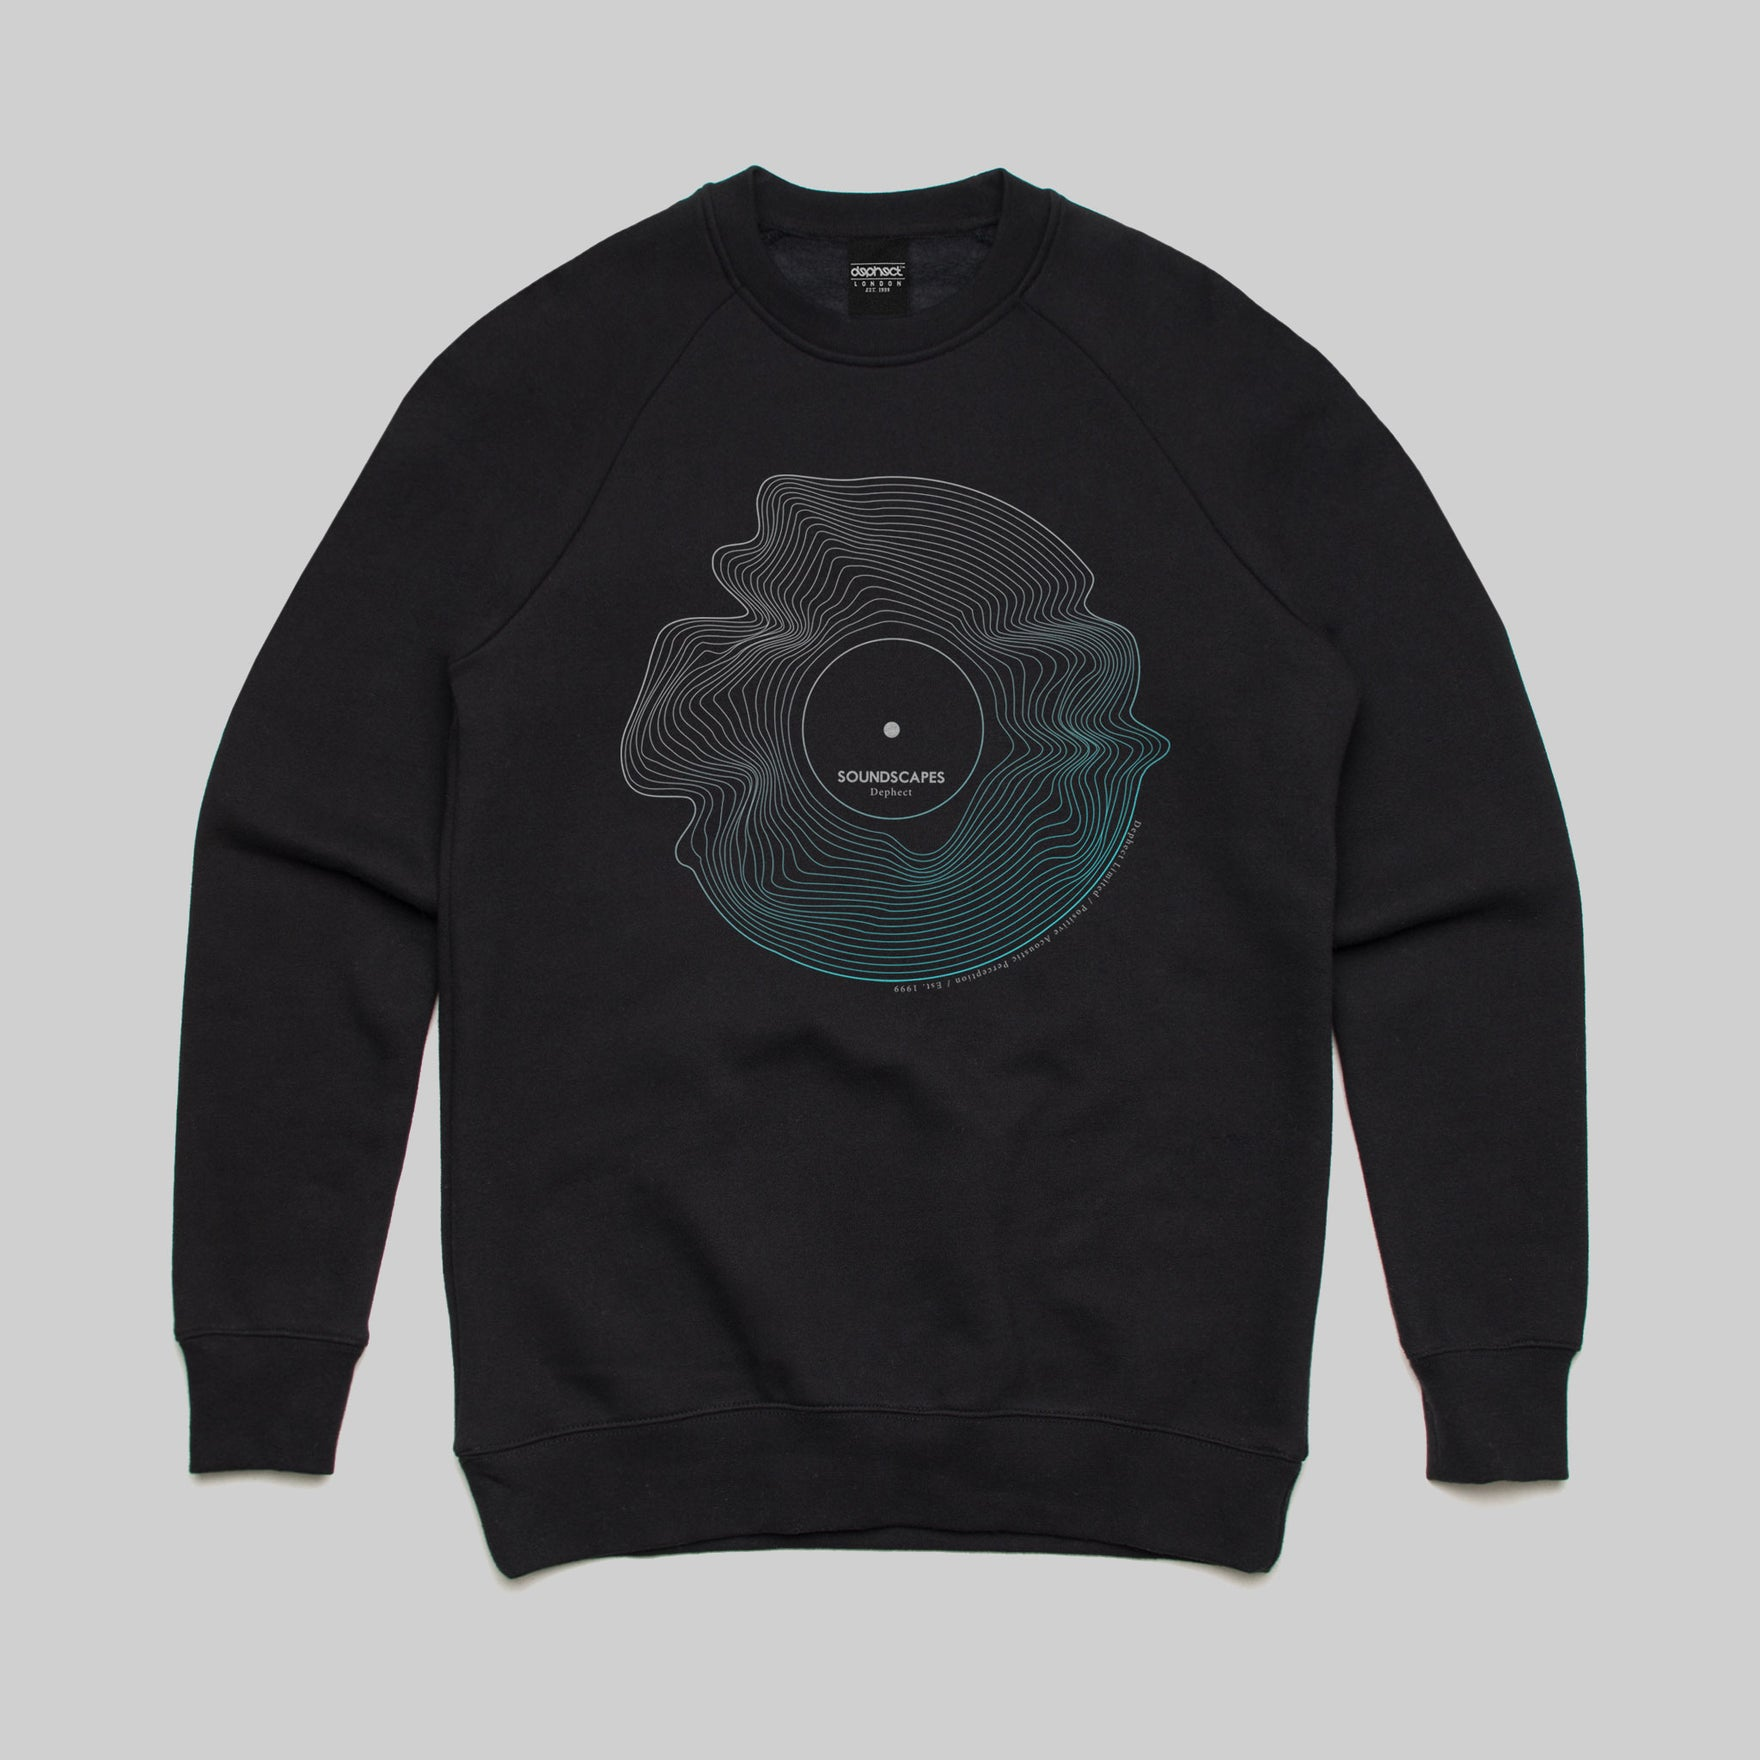 Soundscapes Sweatshirt / Black / Keshone